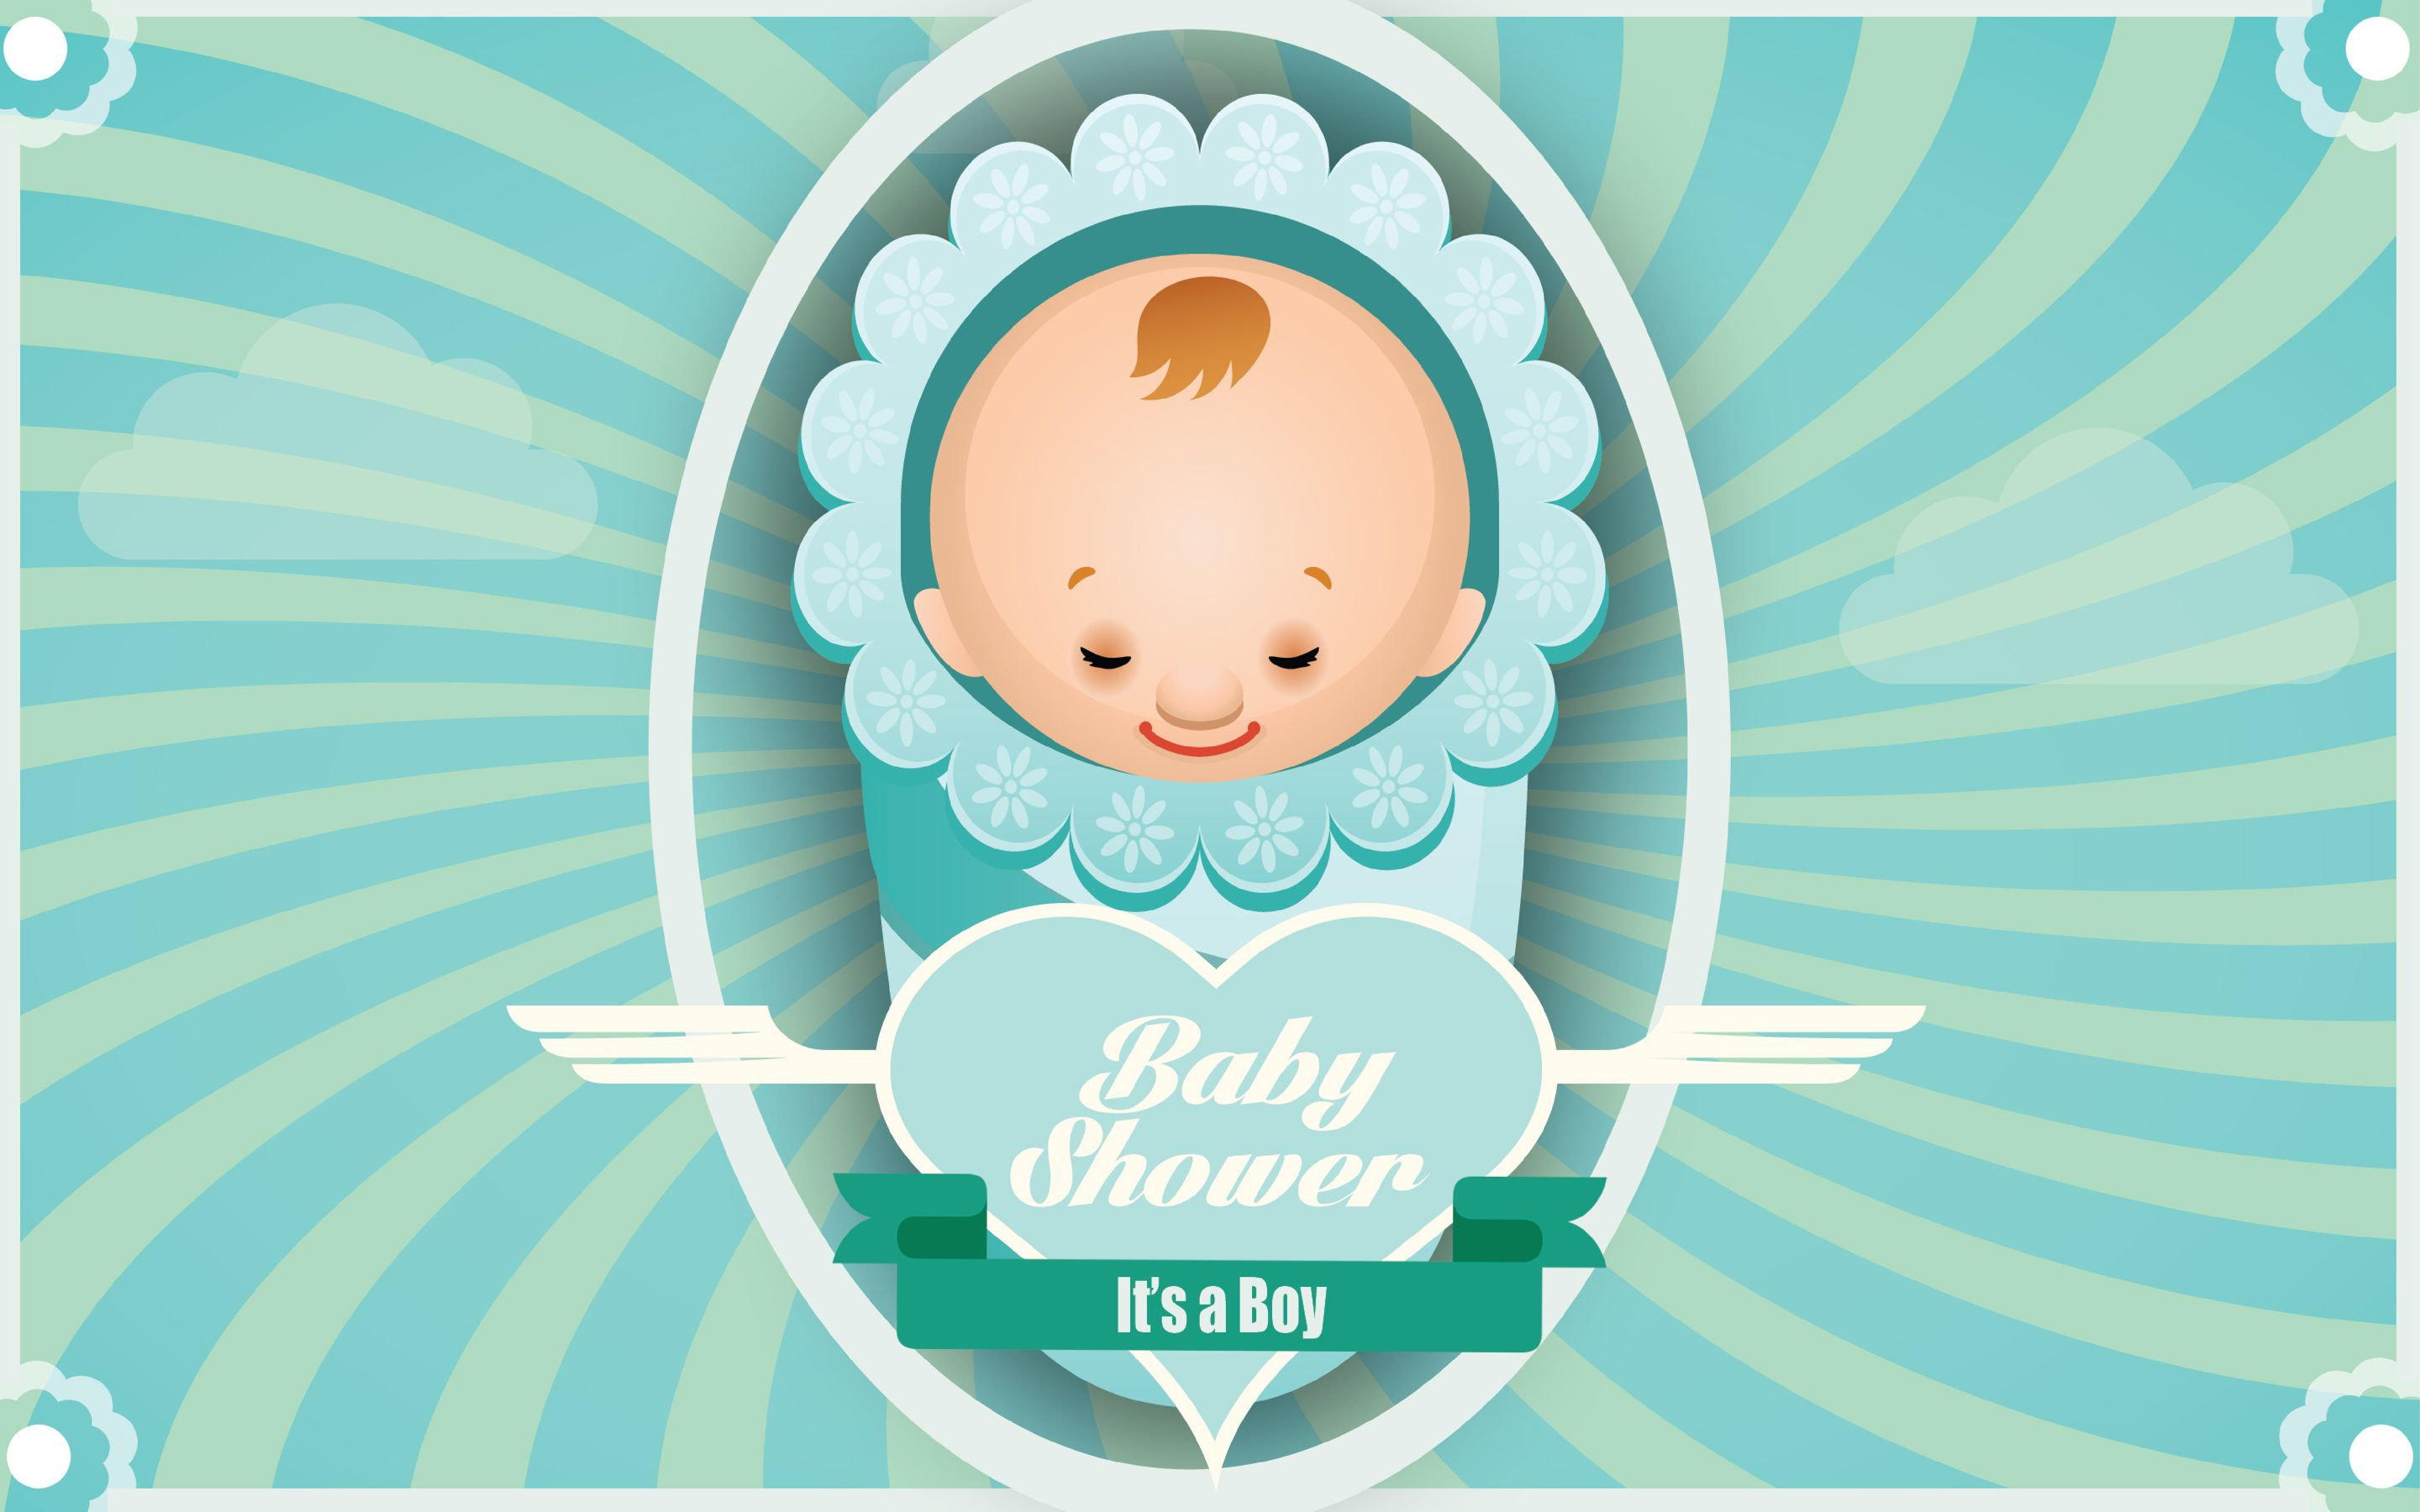 Permalink to Unique Baby Shower Wallpaper